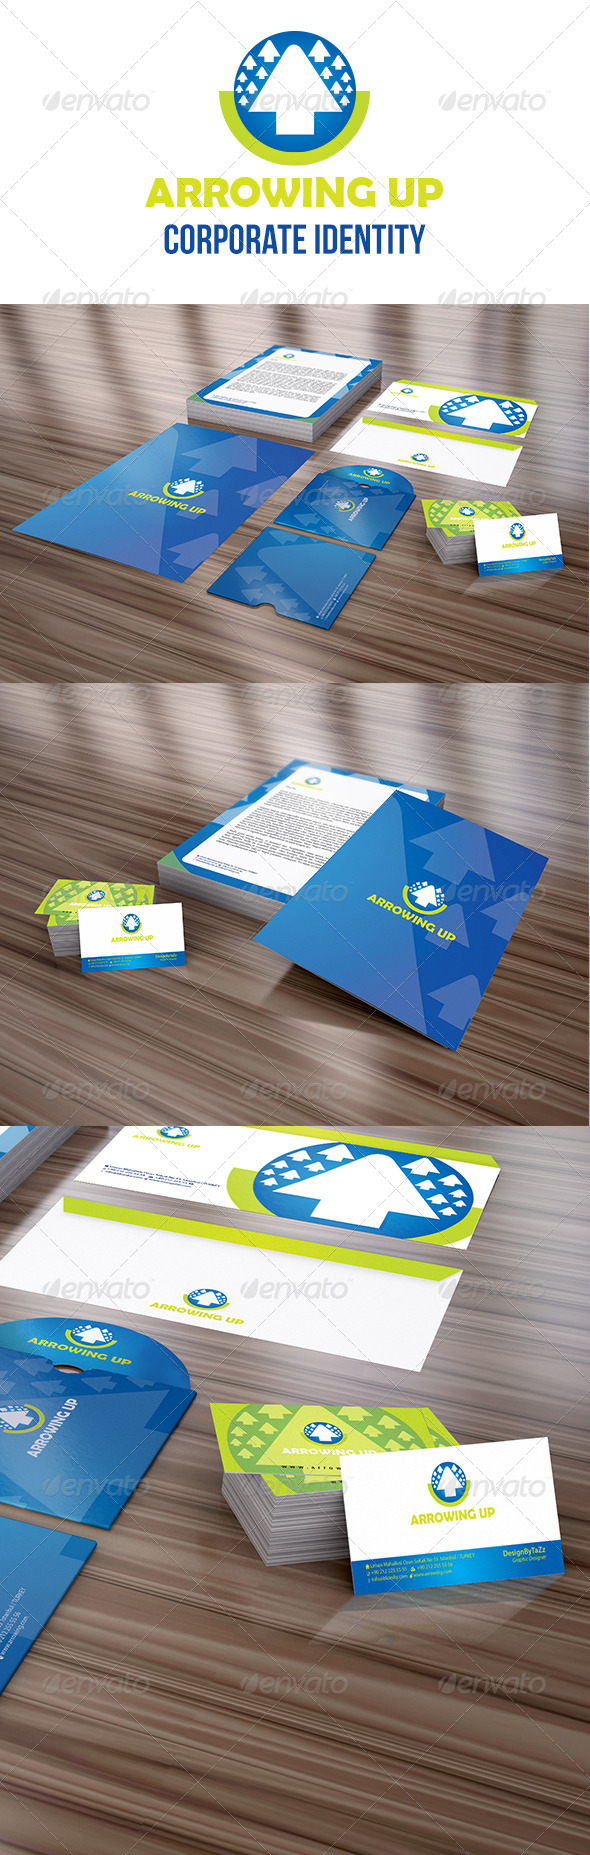 Arrowing Up Corporate Identity Package - Stationery Print Templates